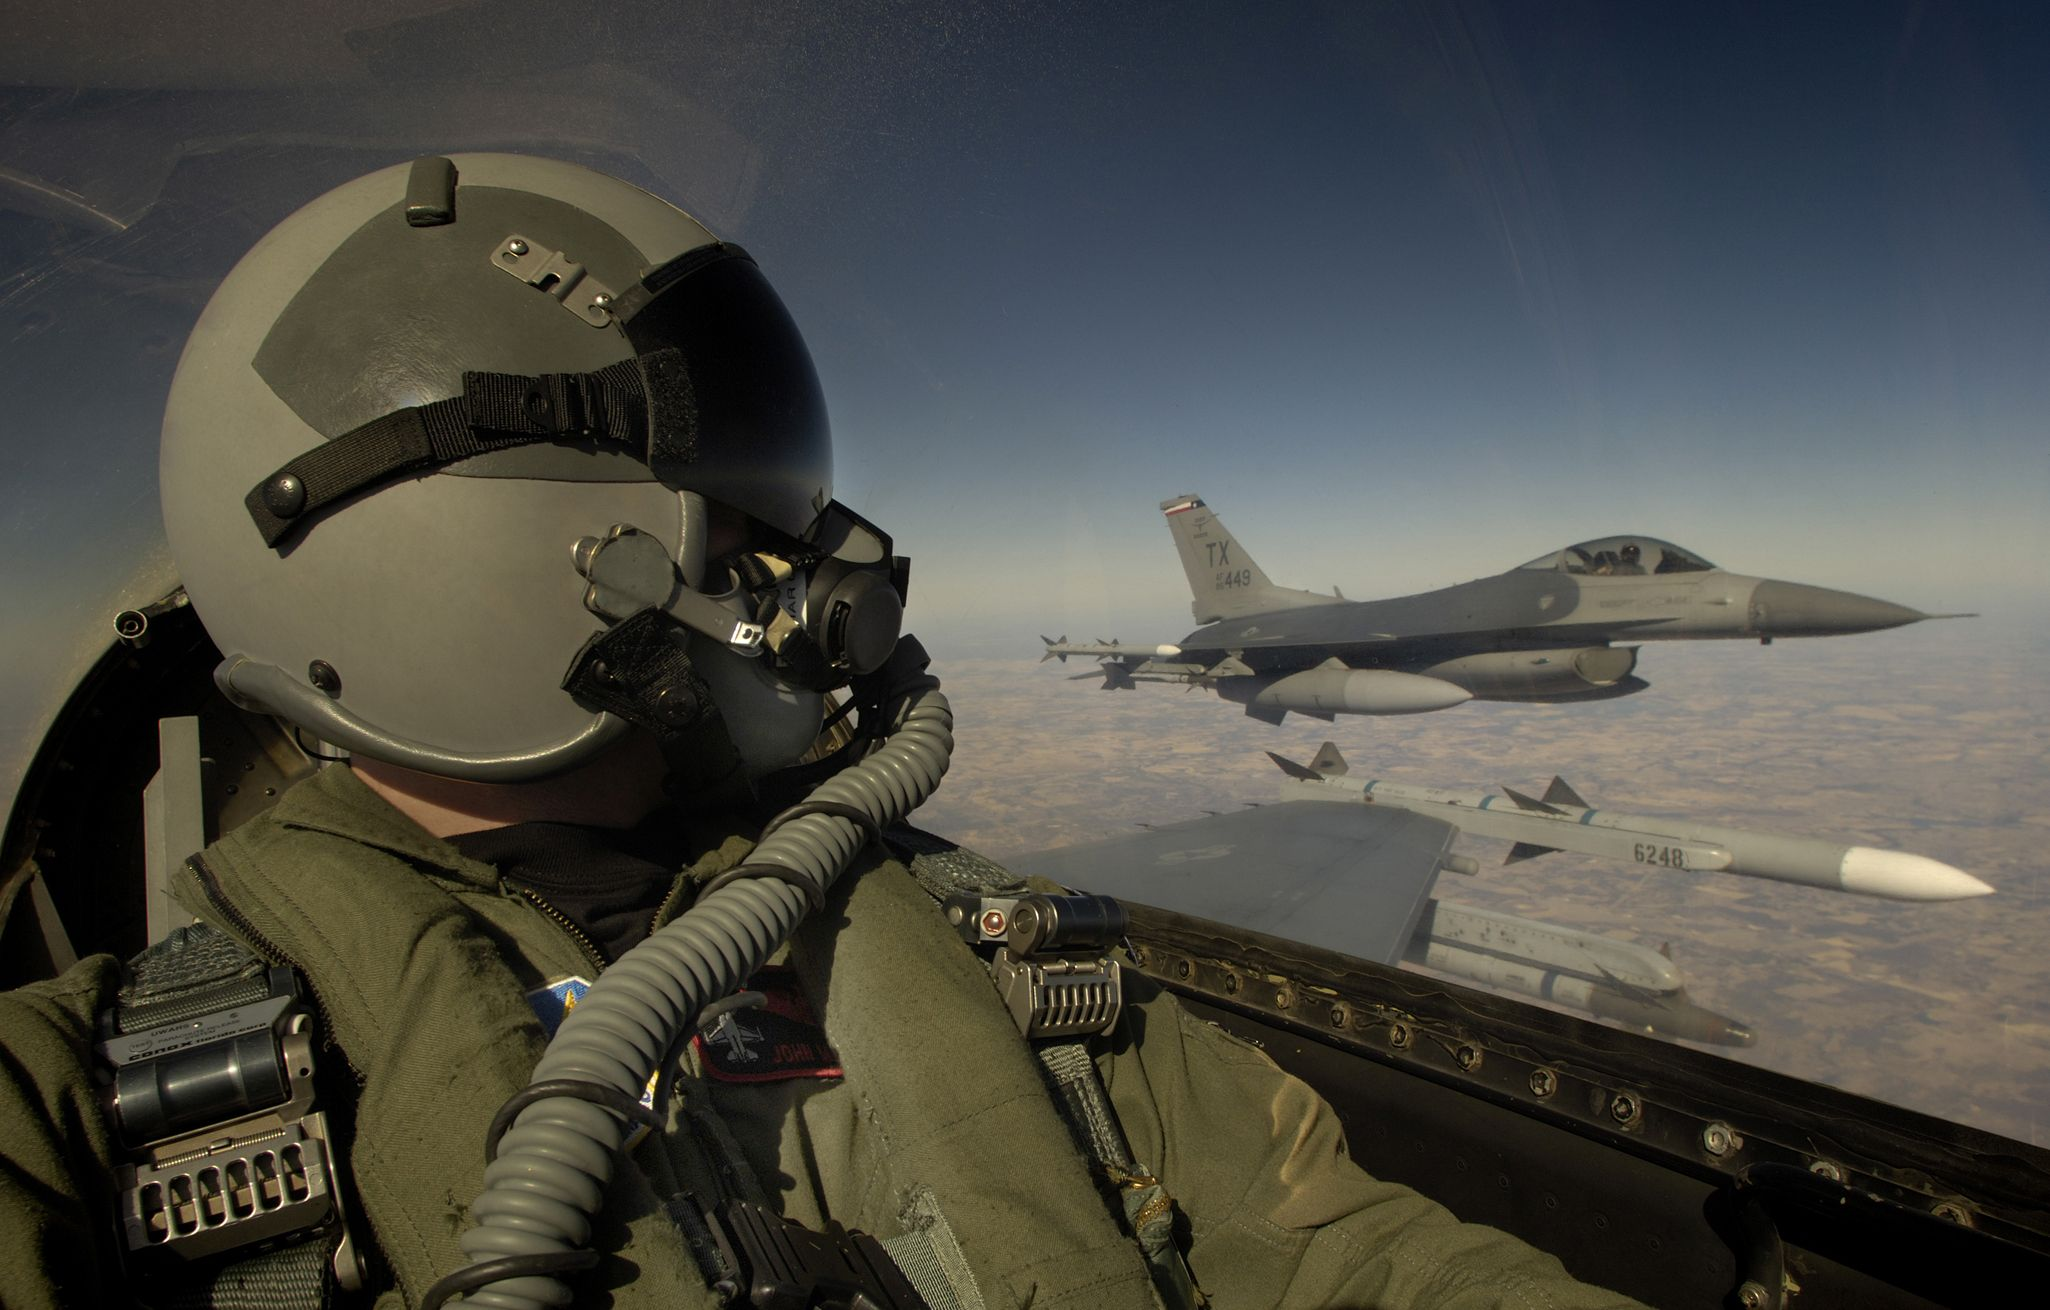 Pin By Dan Varvir On Experiences Fighter Jets Fighter Pilot Aircraft